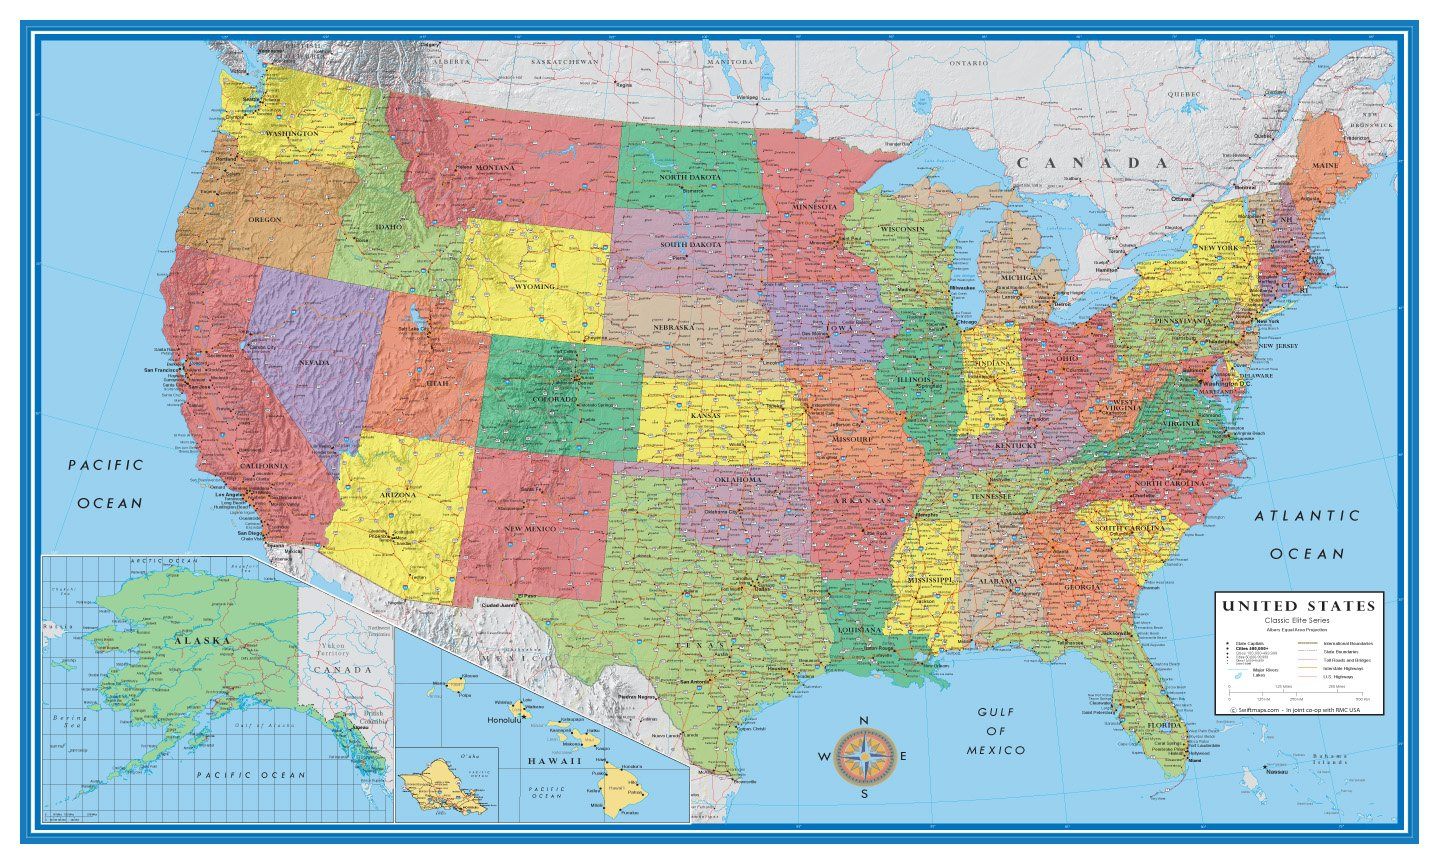 Amazoncom X United States USA Classic Elite Wall Map Mural - United states map with oceans